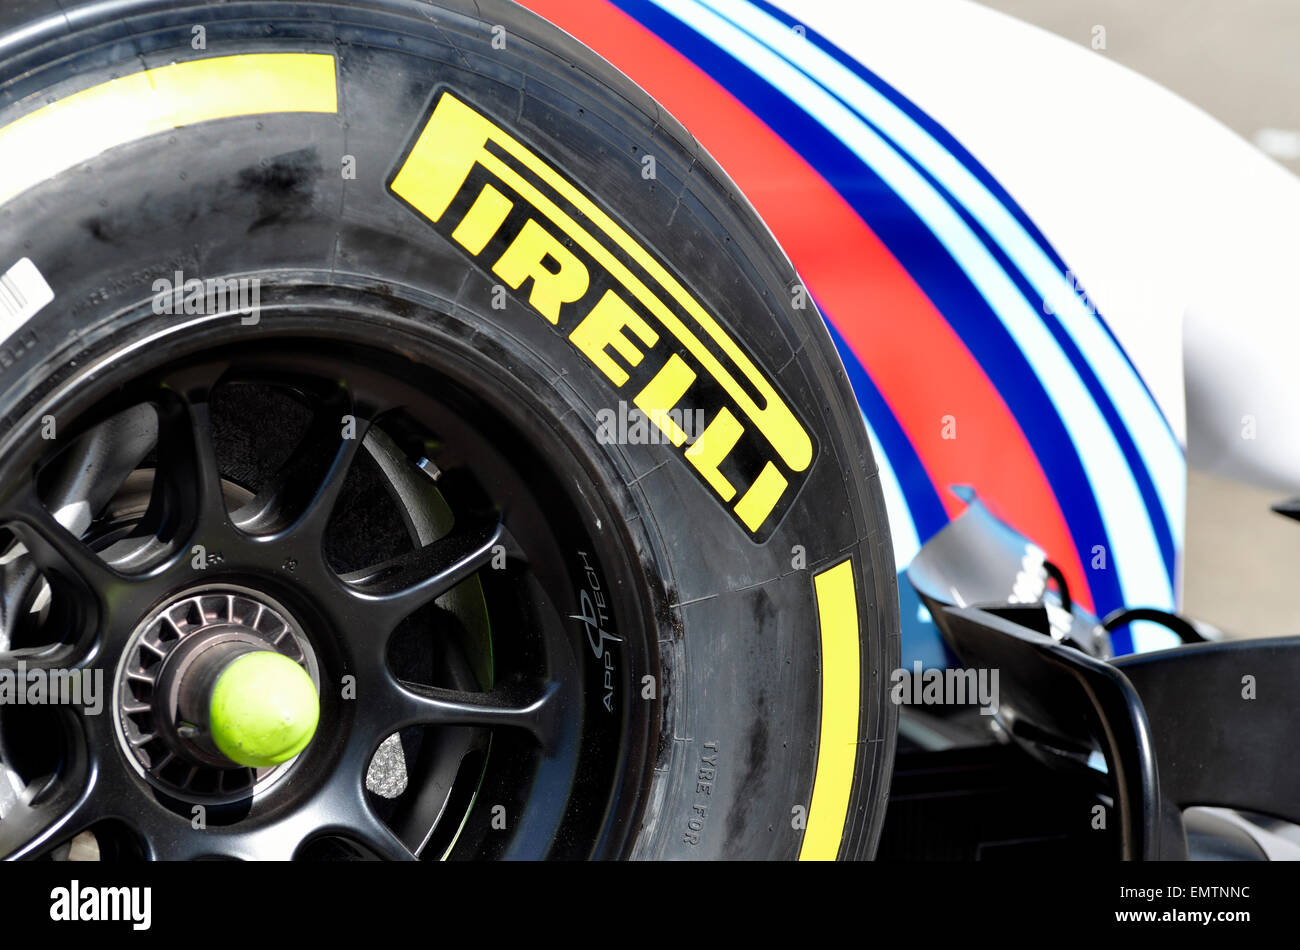 2014 Williams Formula One car - Pirelli P Zero tyre - Stock Image